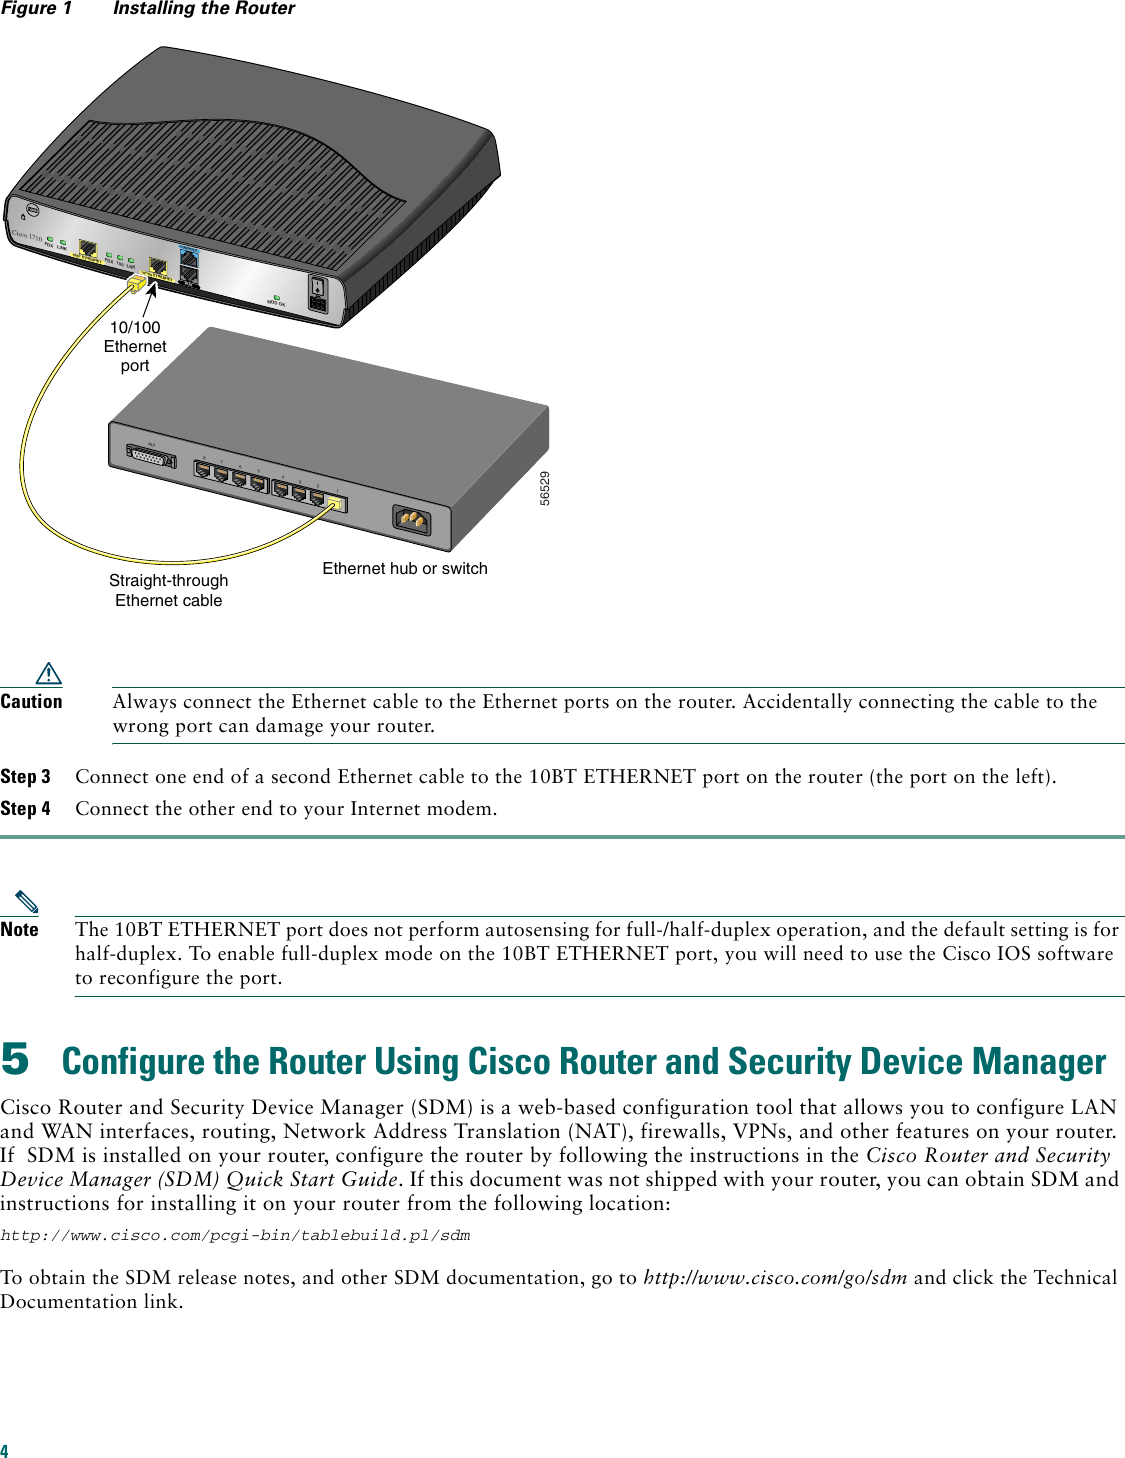 Cisco Systems 1710 Getting Started Guide 1710qsgmif Straight Through Ethernet Cable Page 4 Of 12